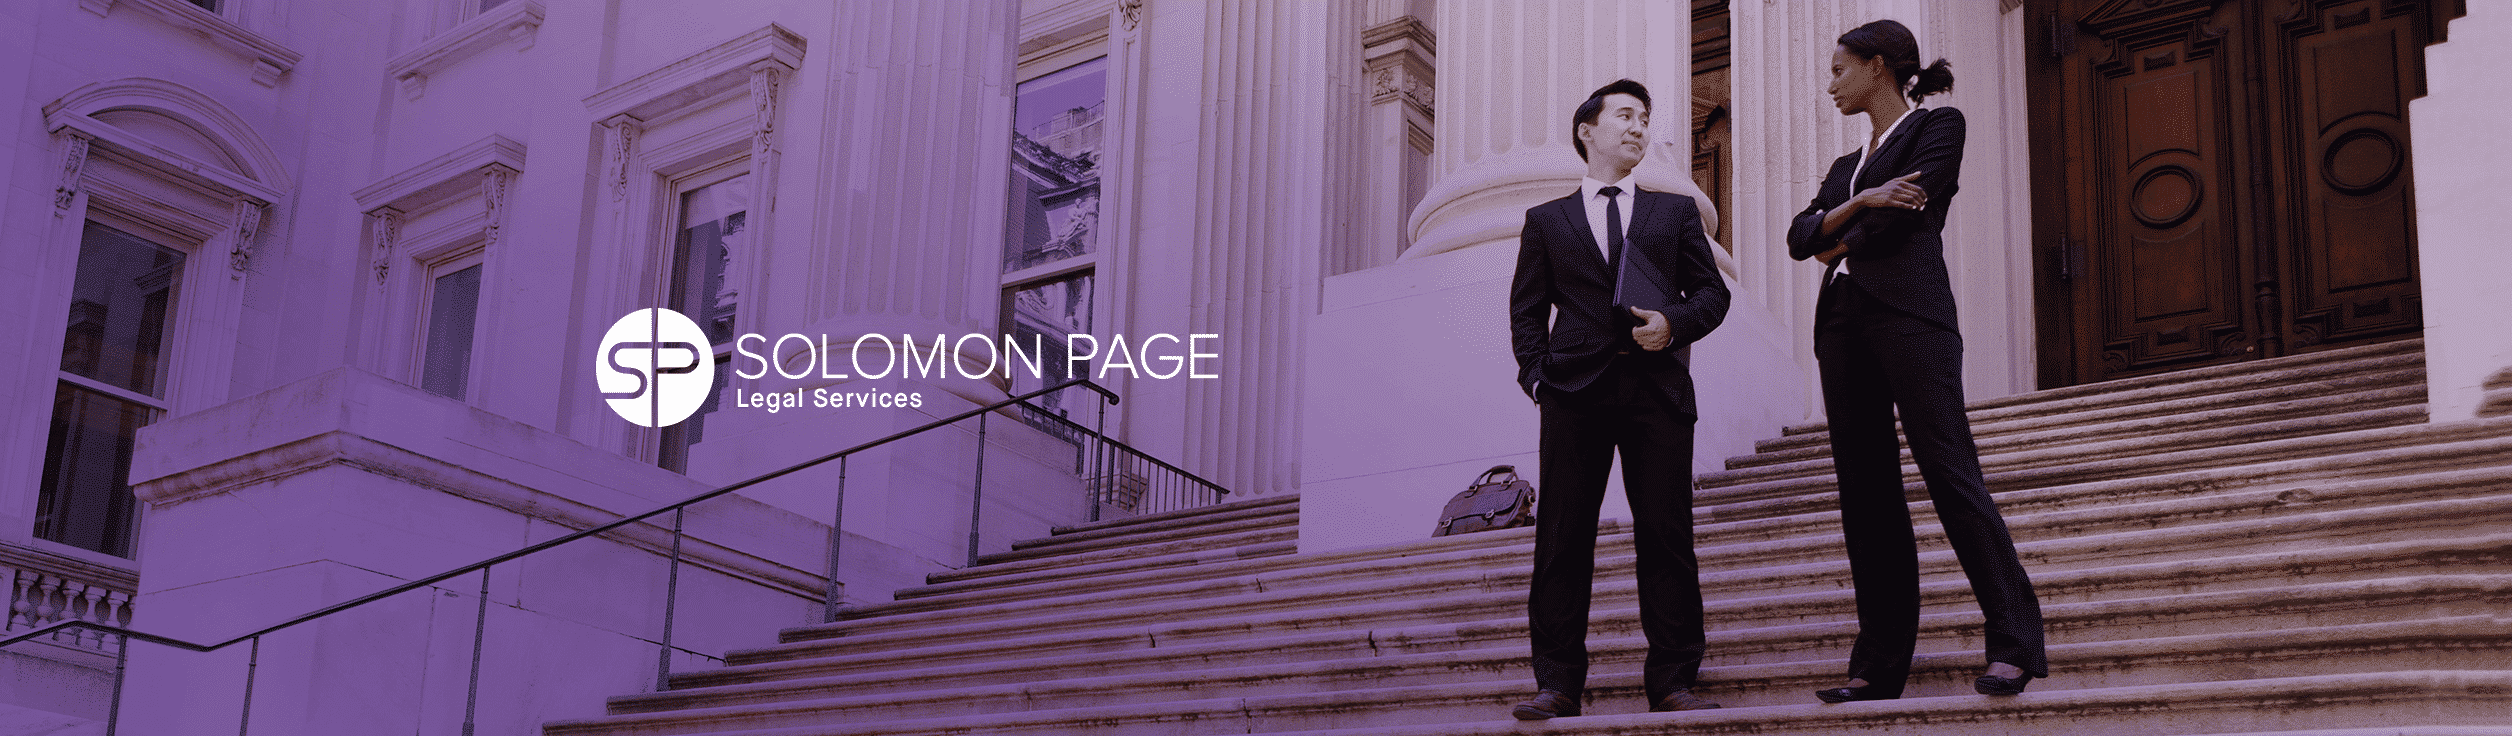 Solomon Page Announces the Launch of Legal Services Division and Opens Los Angeles Office Location